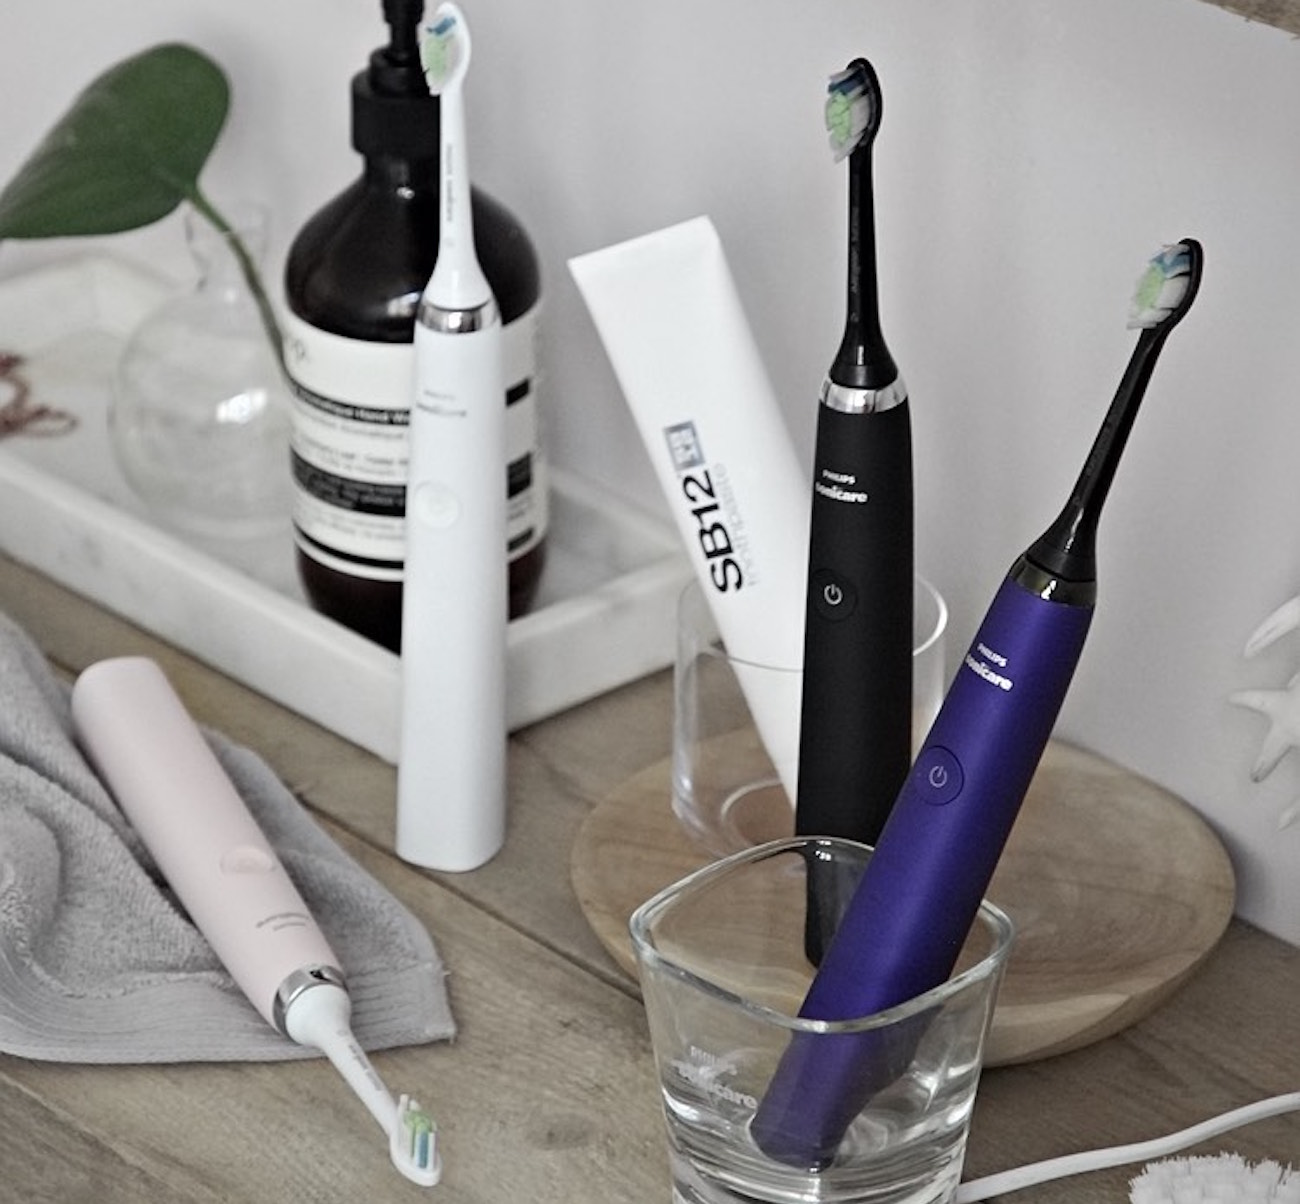 Sonicare DiamondClean Electric Toothbrush by Philips